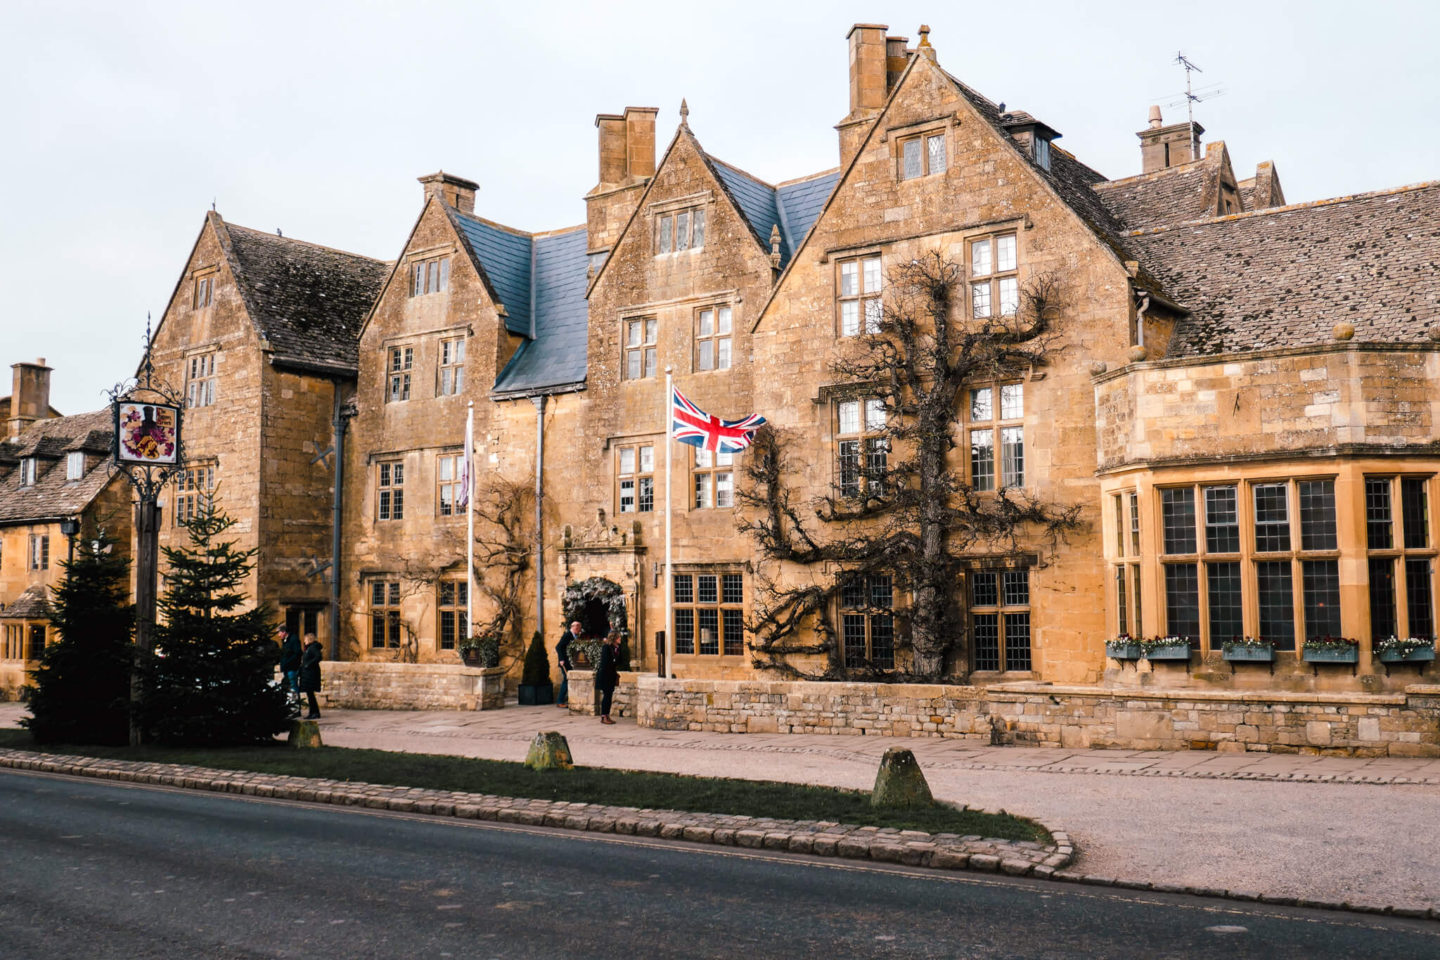 The Lygon Arms, a boutique luxury hotel in the village of Broadway in the Cotswolds